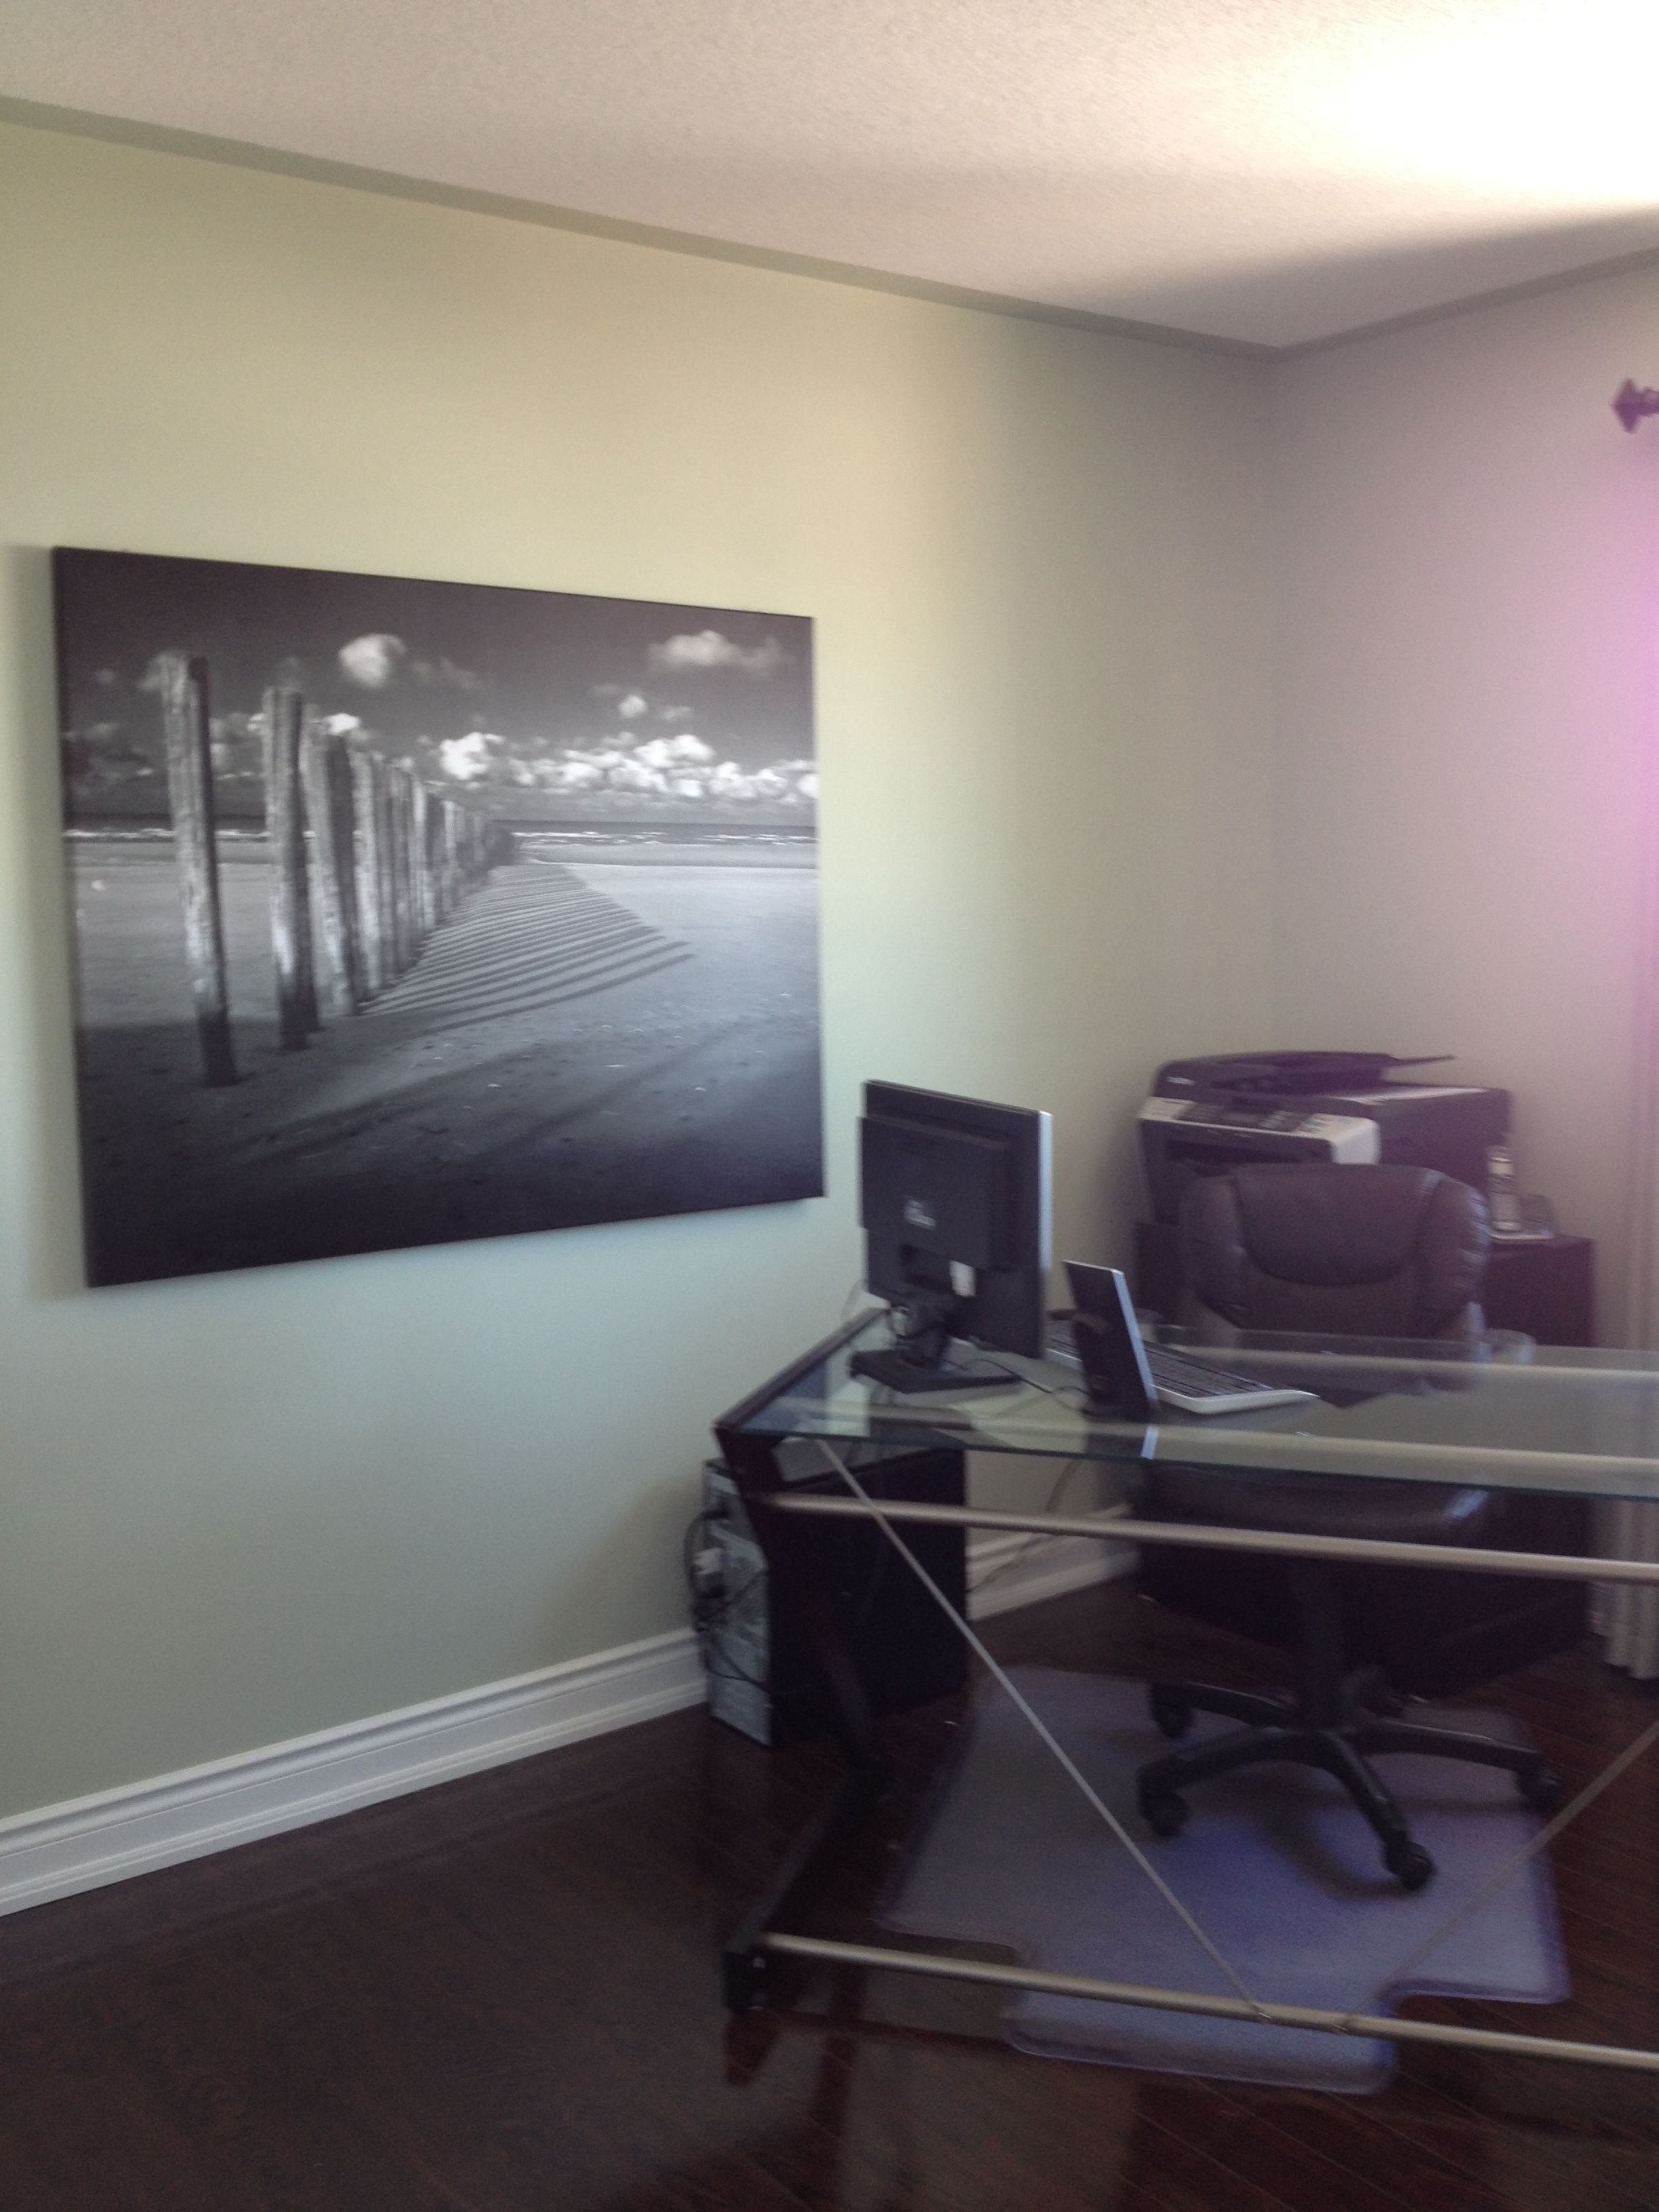 Staging an office space? My secret is to angle the desk - creates more space and adds interest to the room.